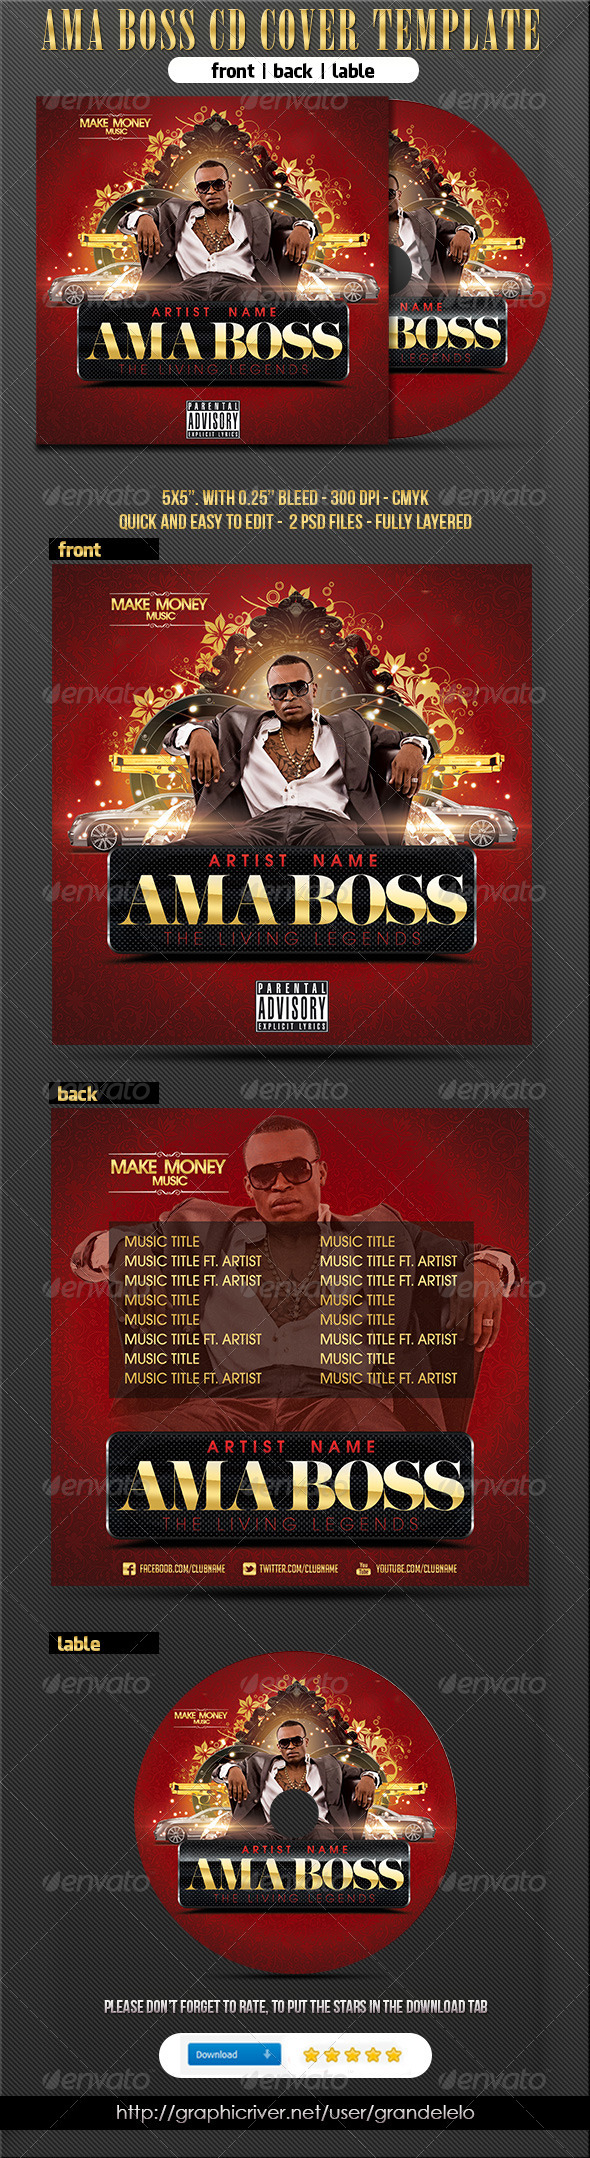 Ama Boss Hiphop Cd Cover Template - CD & DVD Artwork Print Templates